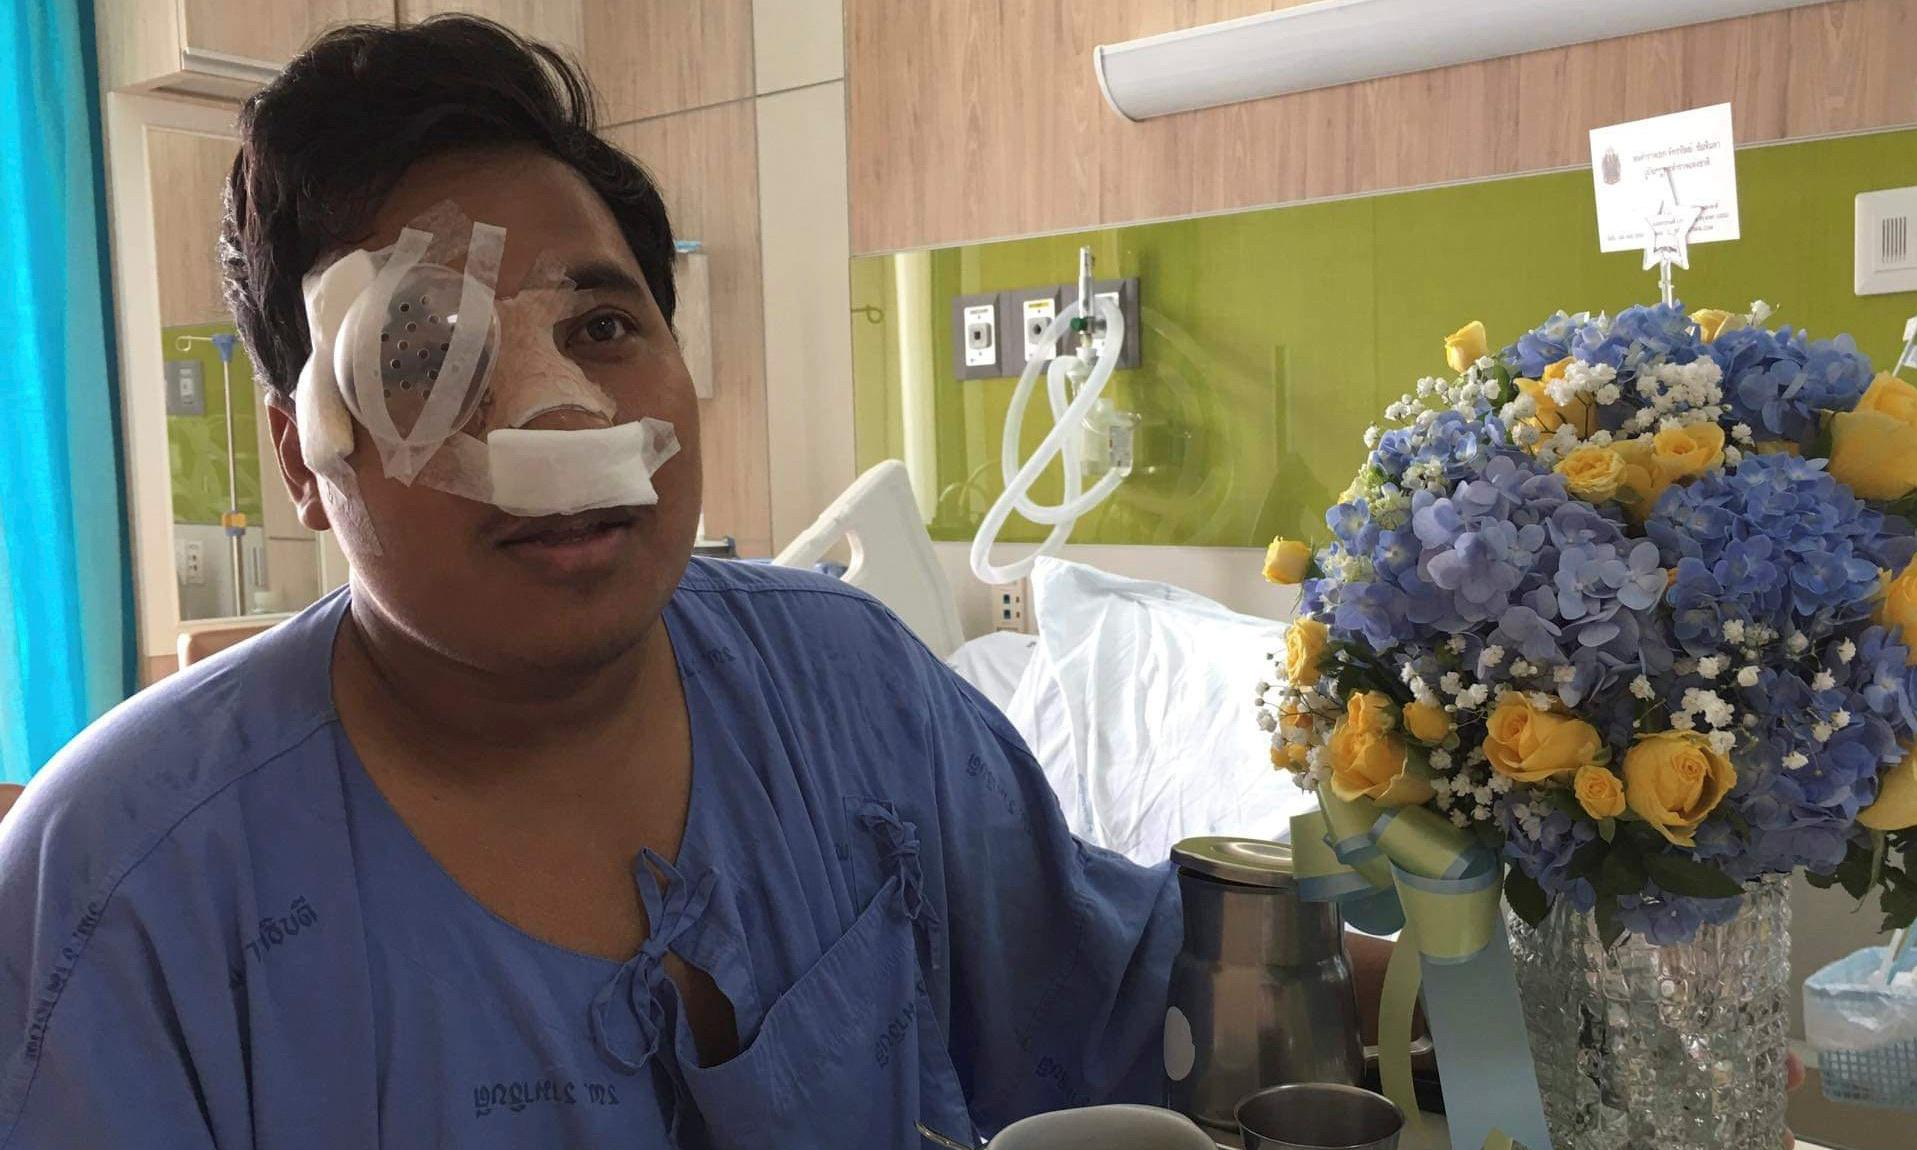 'I thought they would kill me': Thai dissidents targeted in brutal crackdown